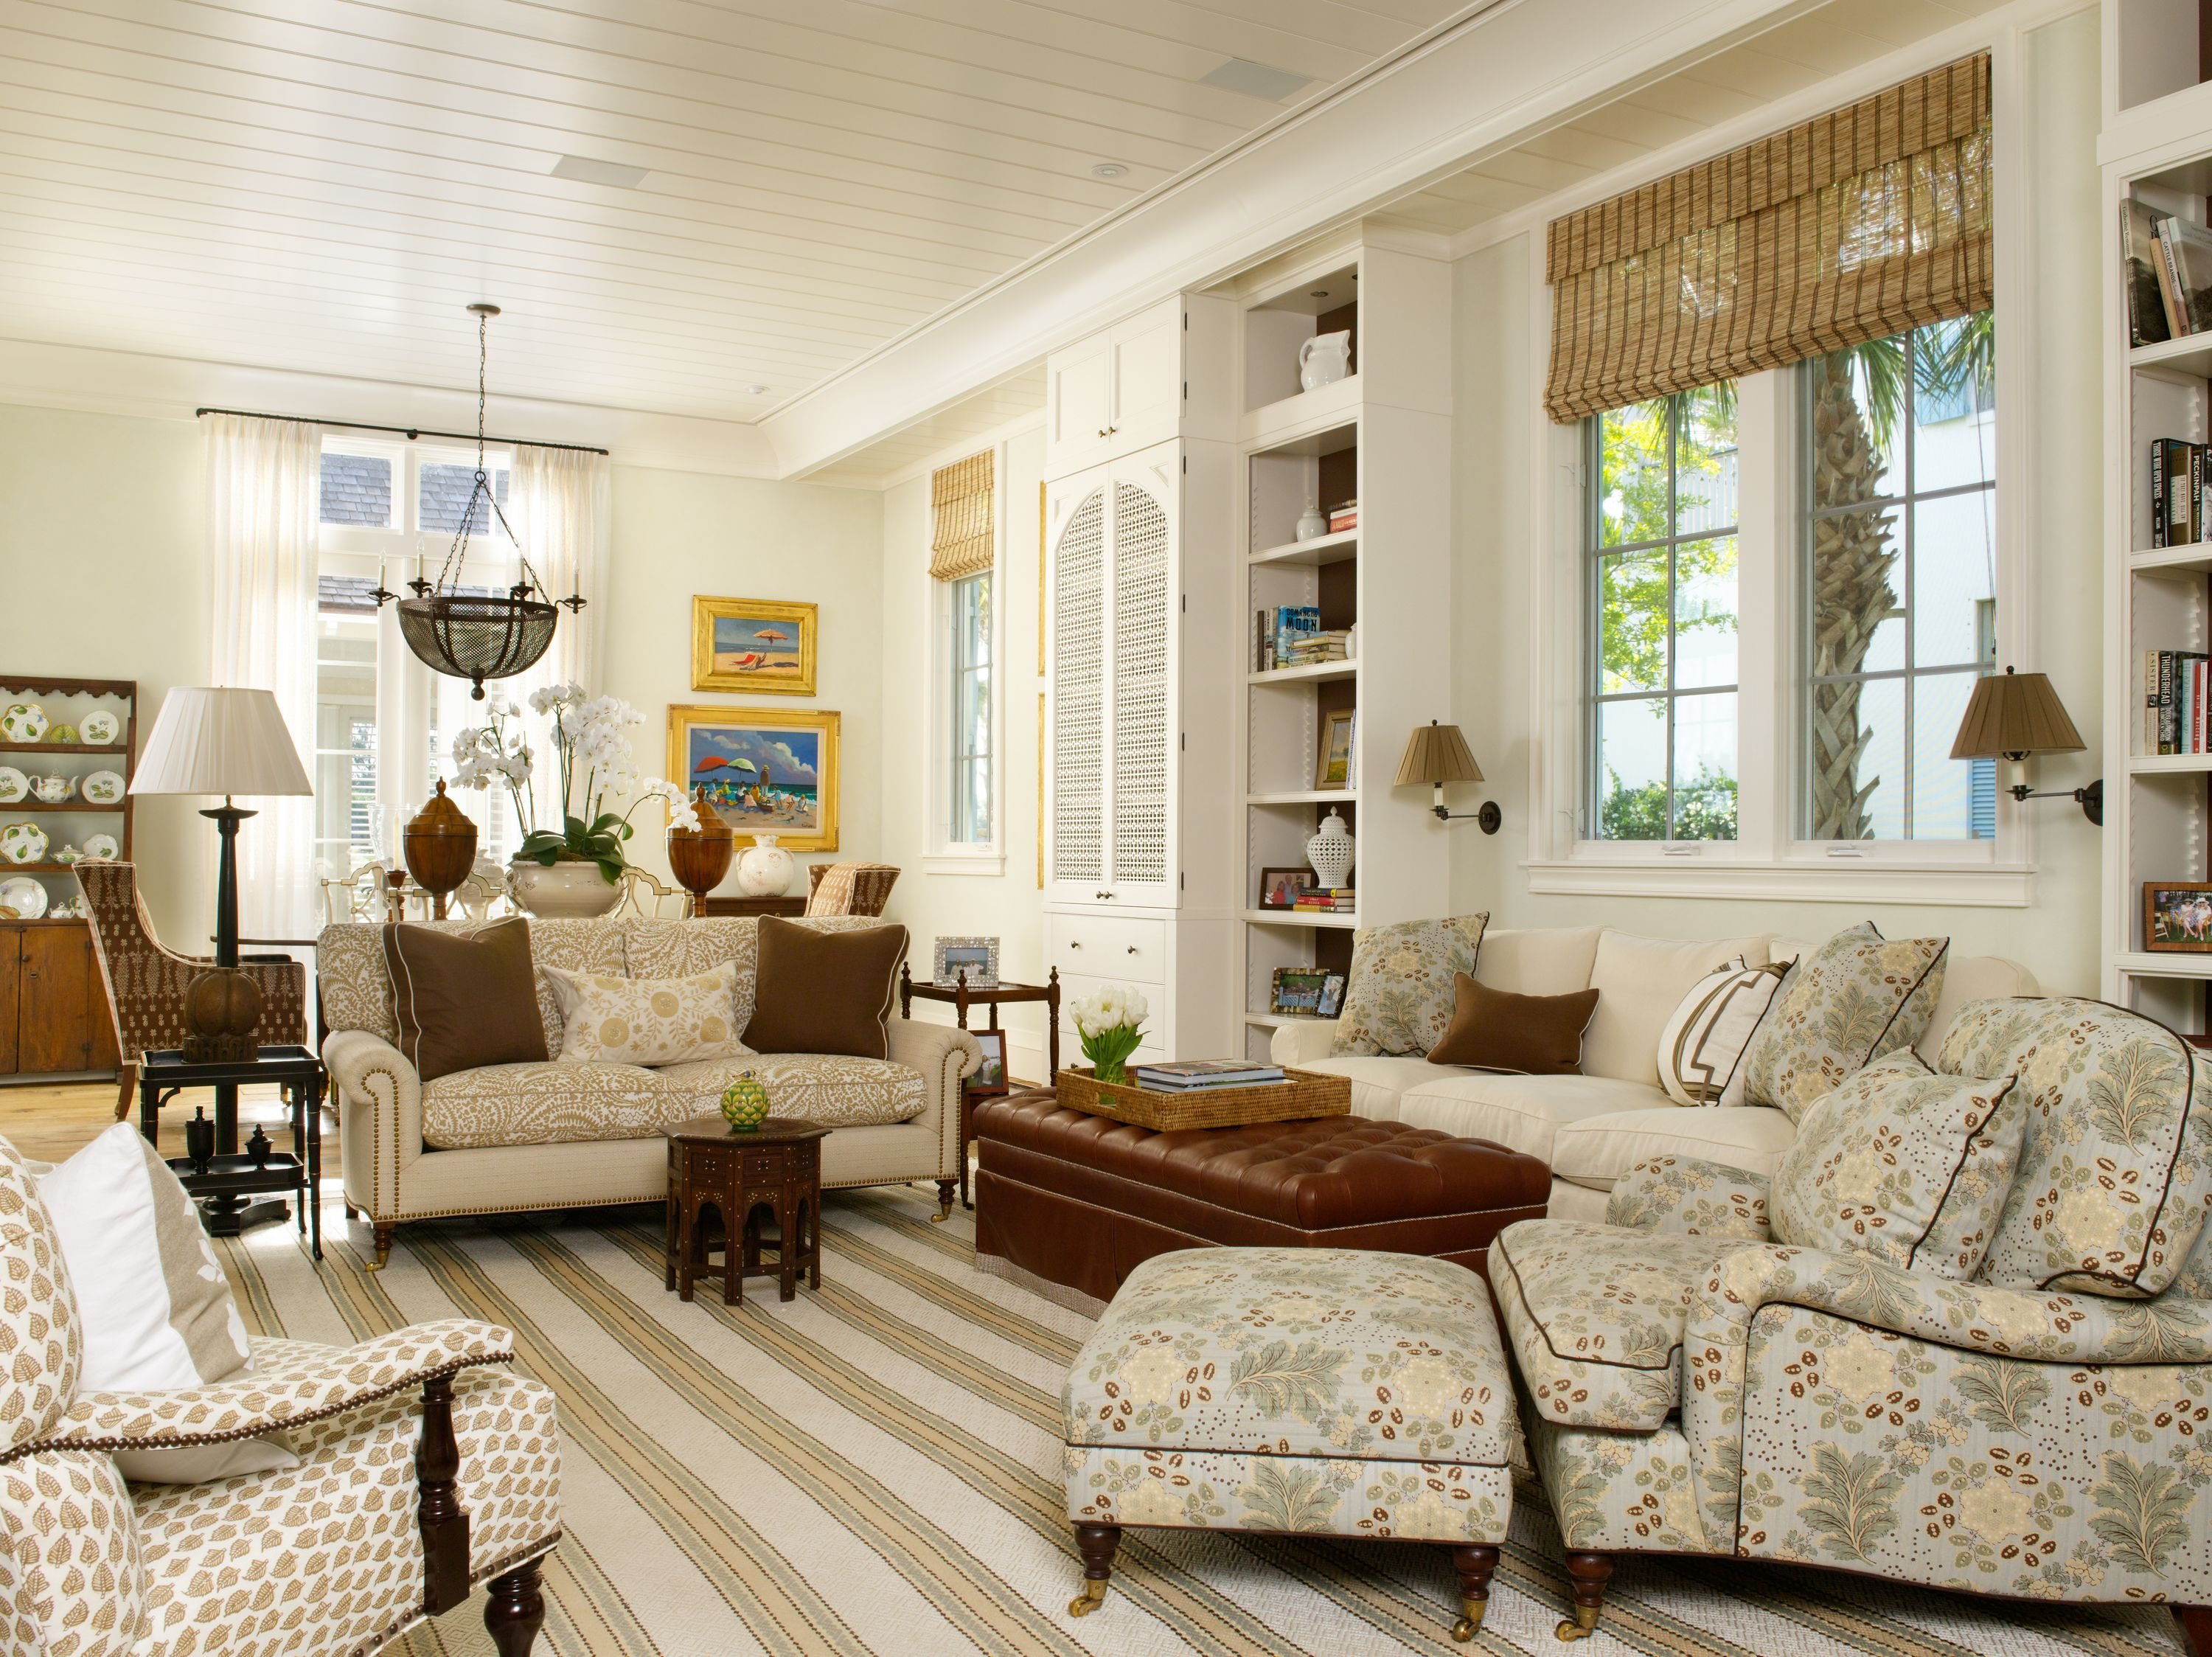 Welcome To Rod Mickley Interiors - Vero Beach, Fl -